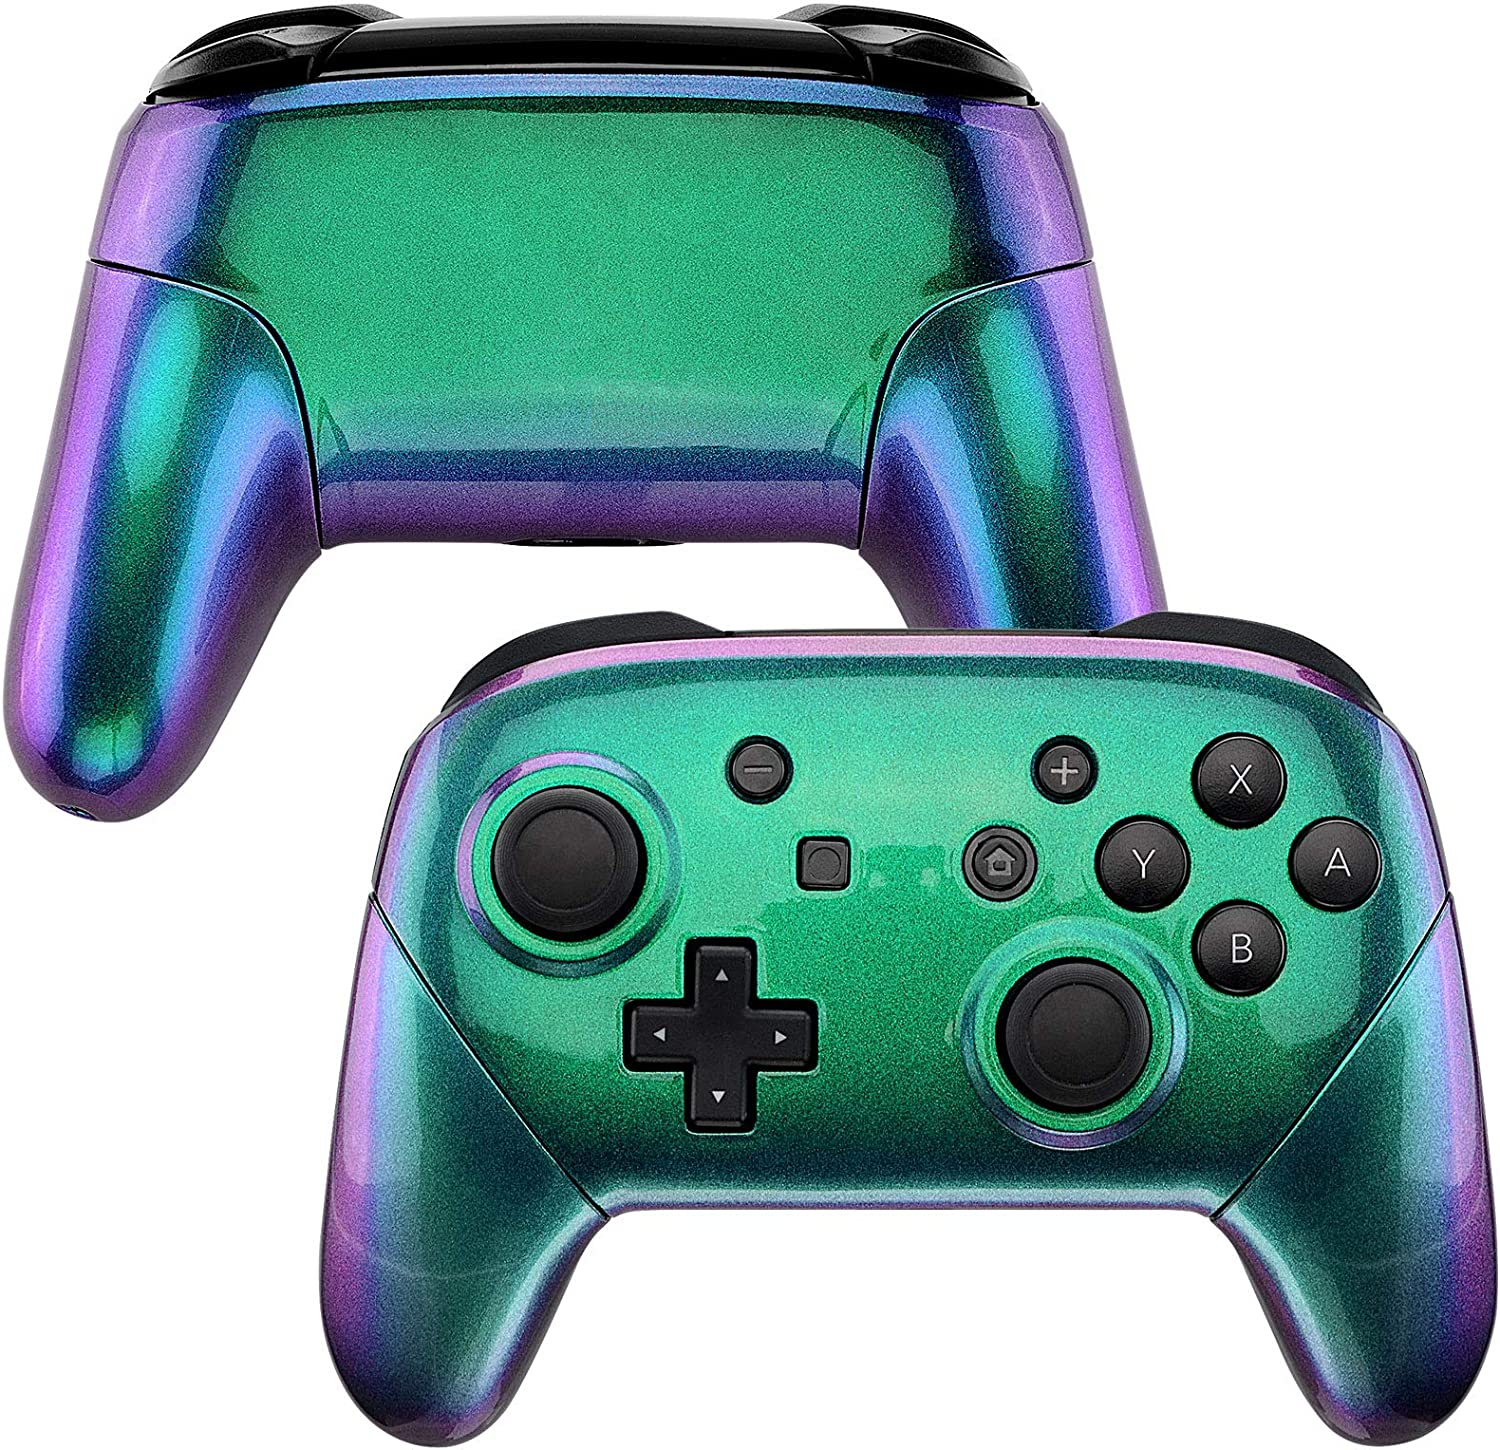 eXtremeRate Chameleon Faceplate Backplate Handles for Nintendo Switch Pro Controller, Green Purple DIY Replacement Grip Housing Shell Cover for Nintendo Switch Pro - Controller NOT Included: Computers & Accessories